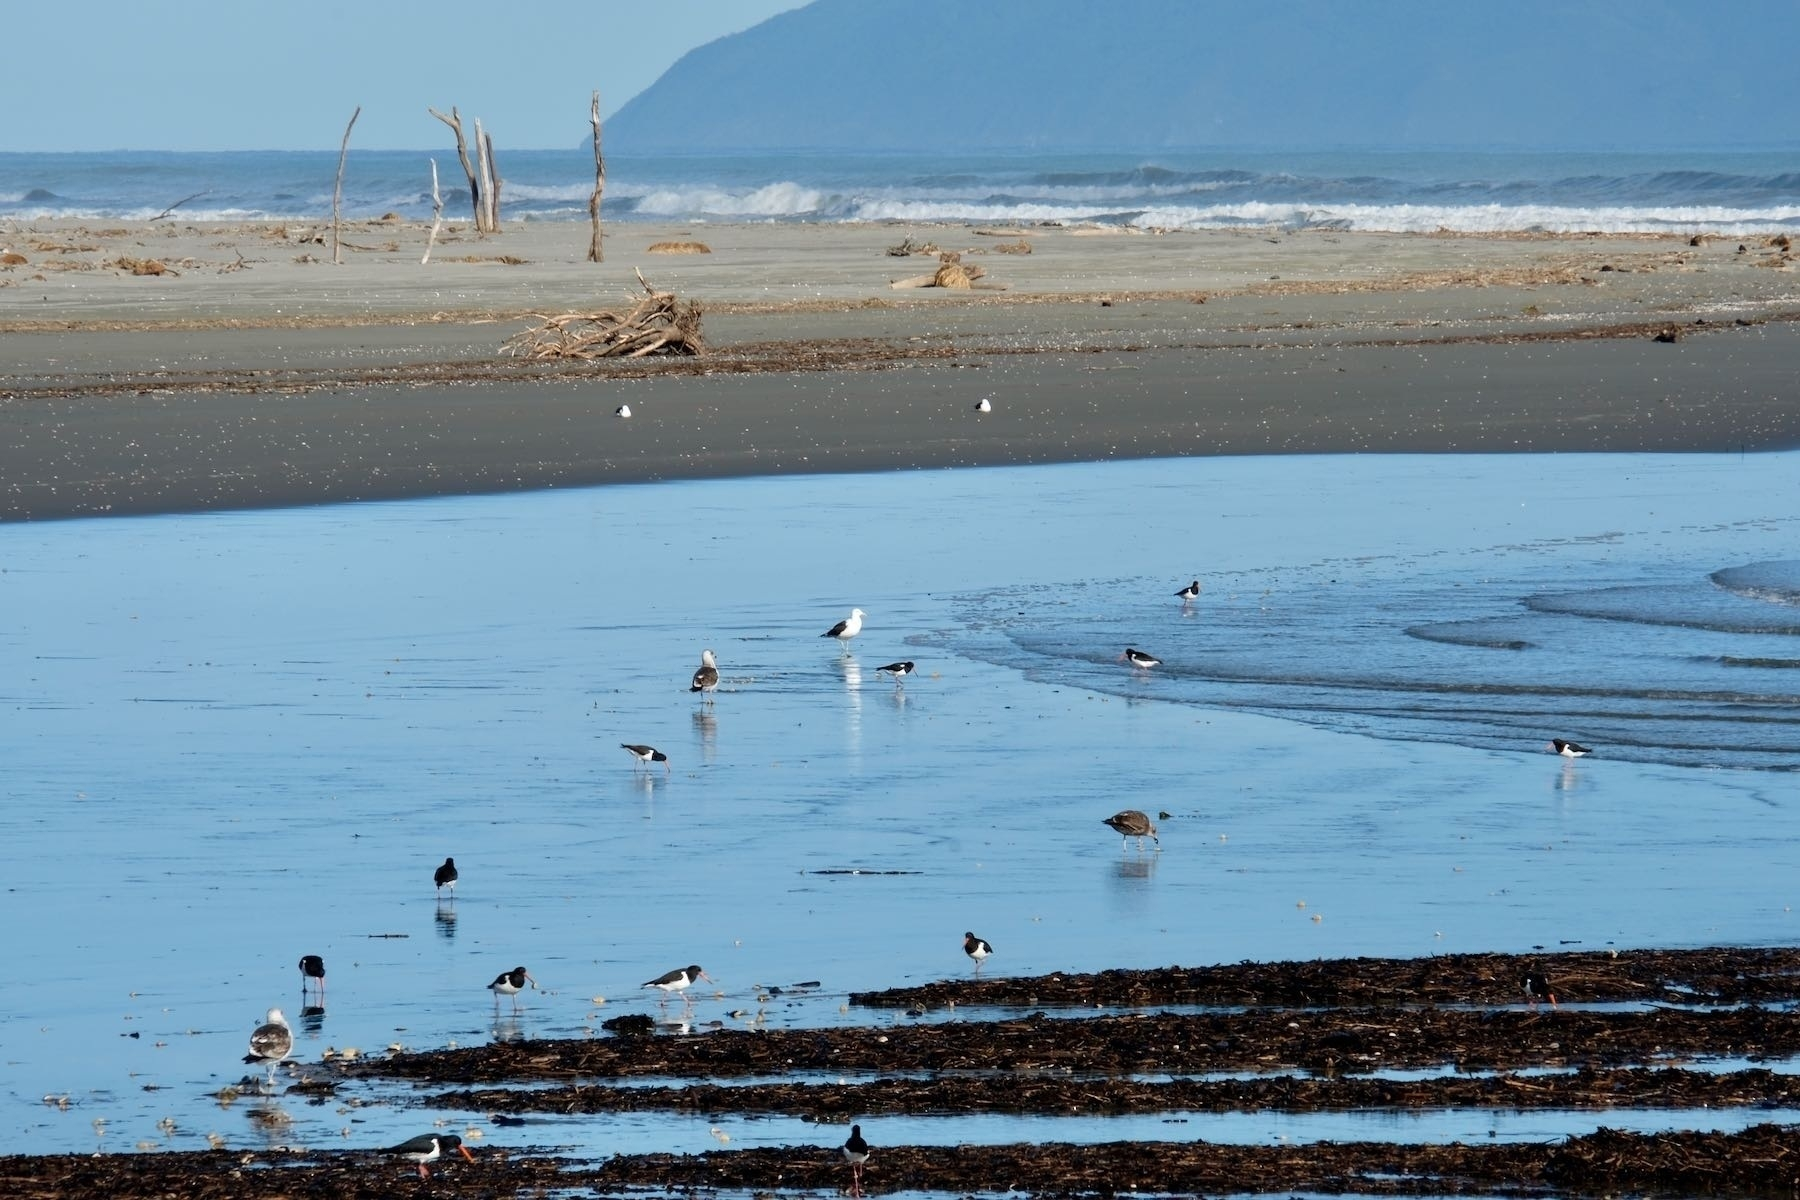 Foreground: birds in water, with sand behind them, then waves in the sea, then a looming island.